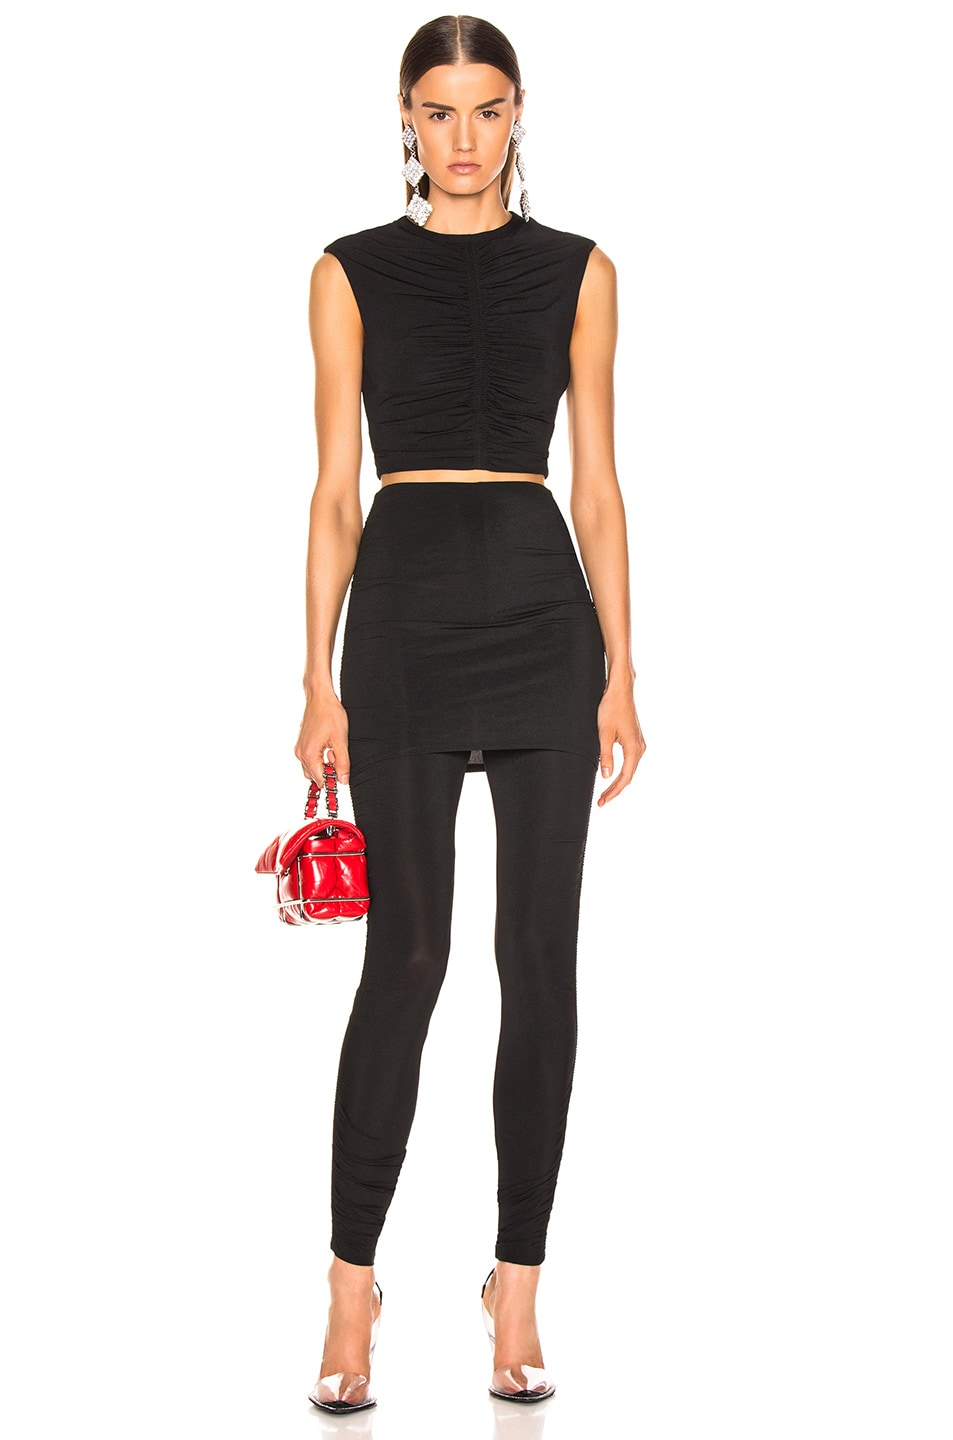 Image 4 of T by Alexander Wang Crepe Twist Legging in Black